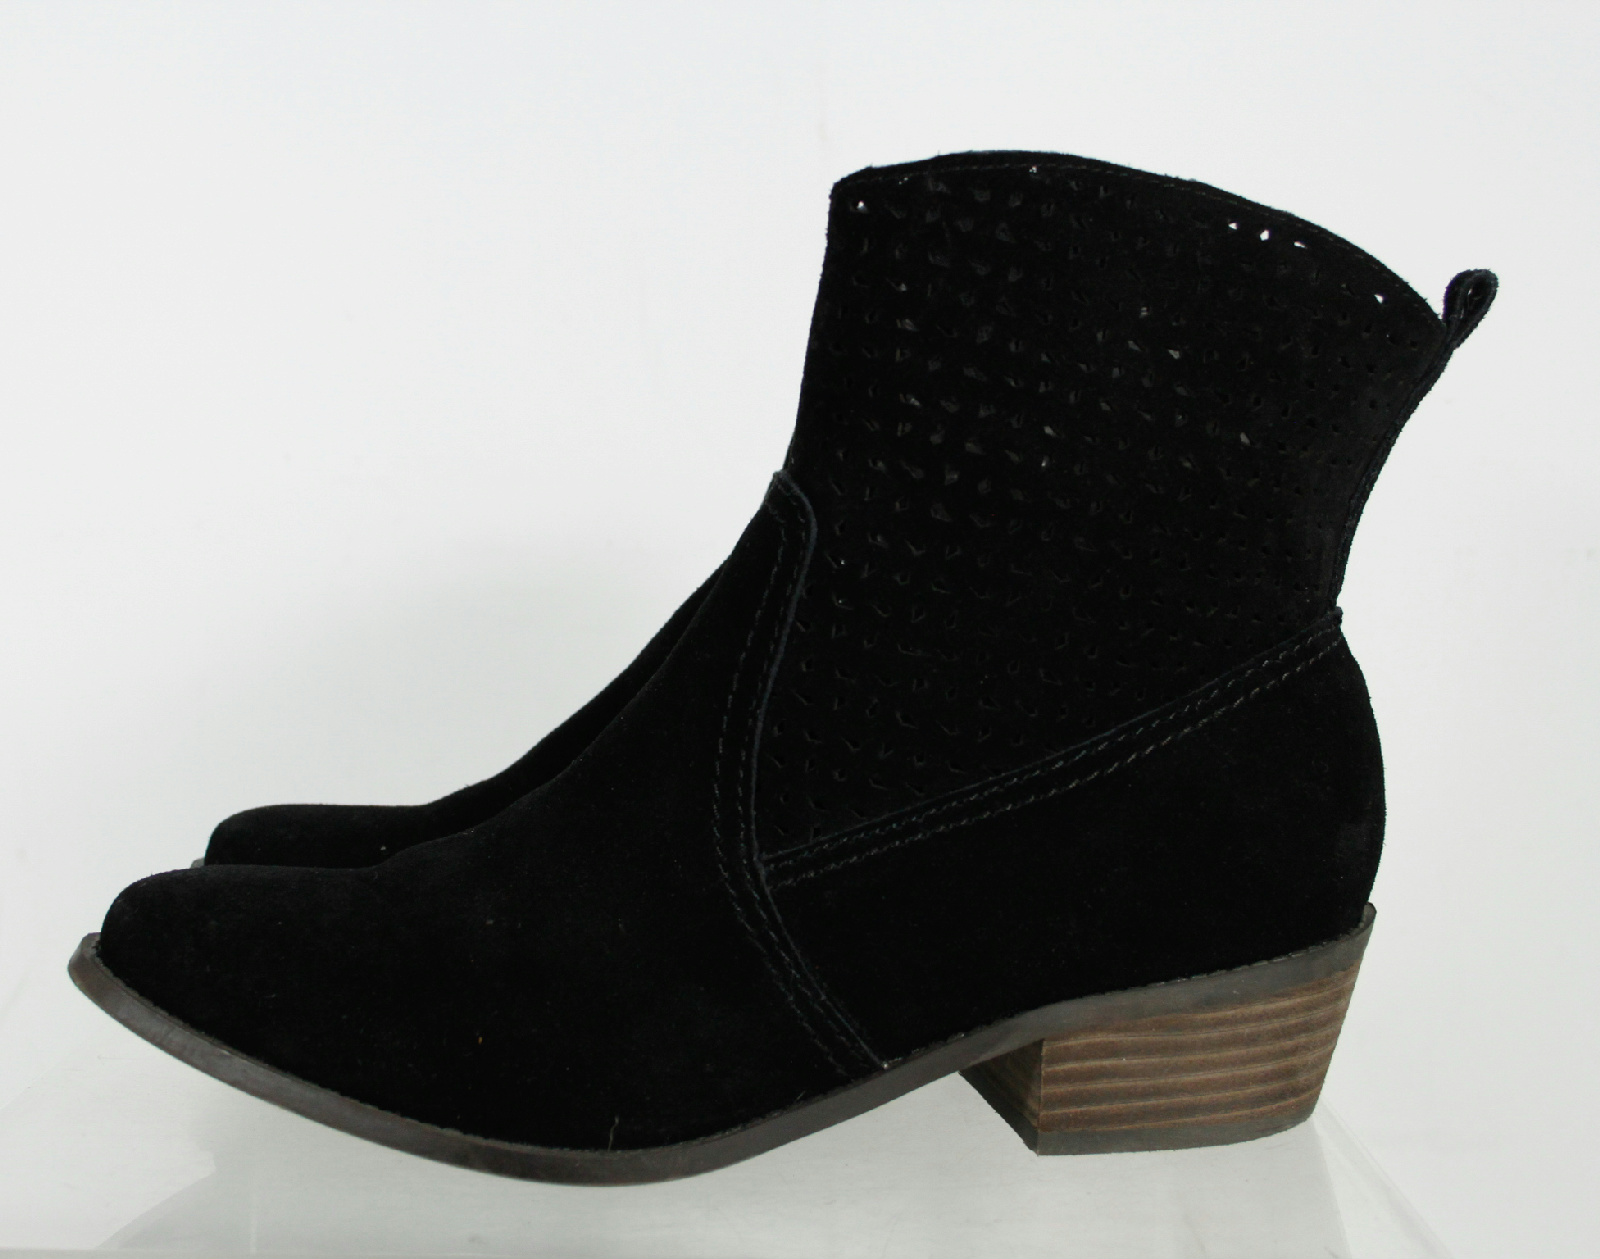 american eagle black suede cut out patterned ankle boots